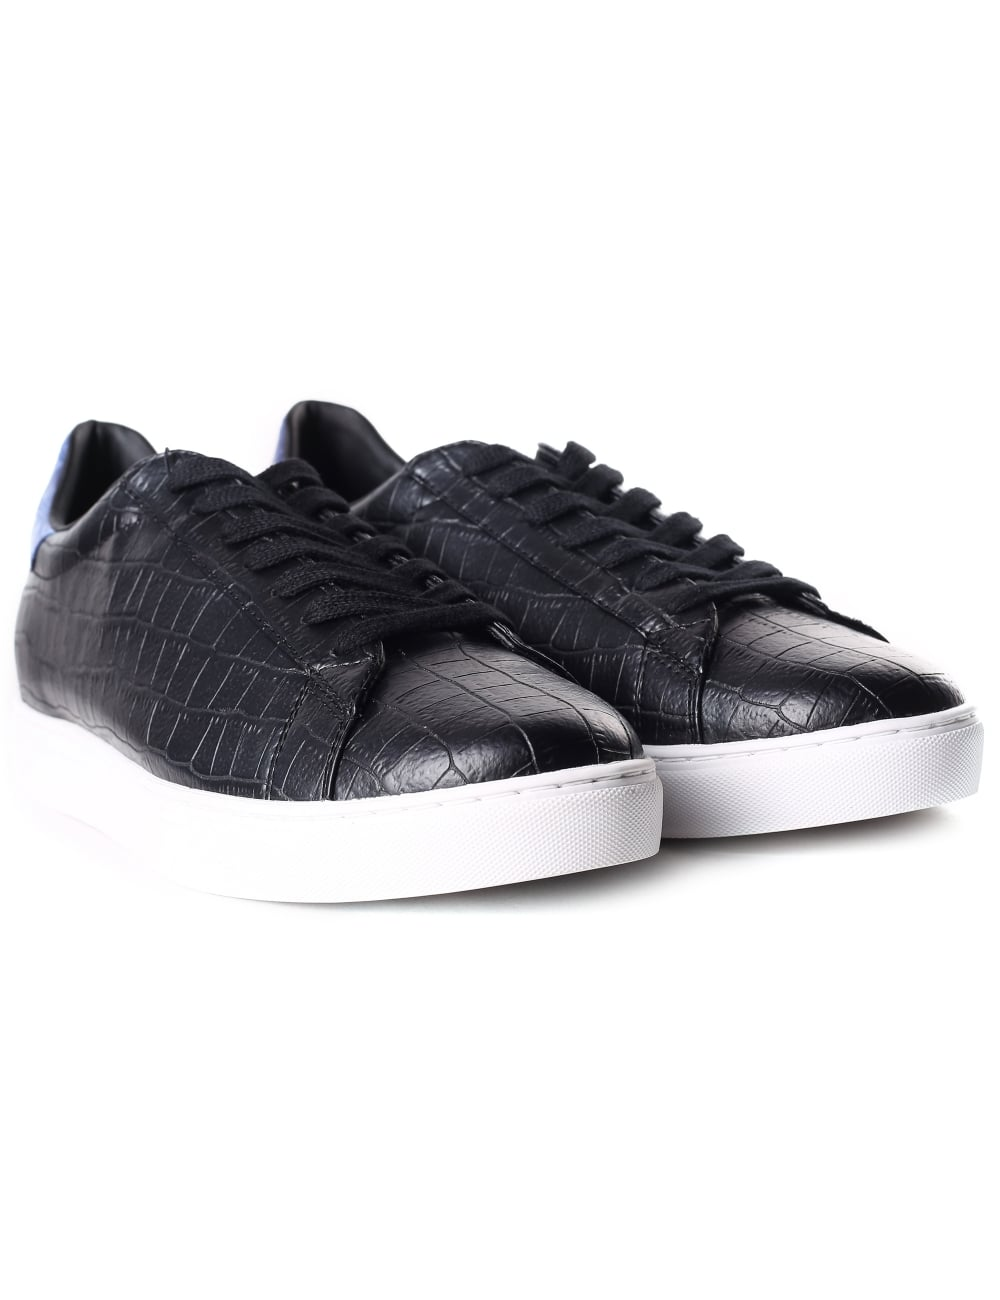 729456f19ff Armani Jeans Men s Croc Embossed Lace Up Trainer